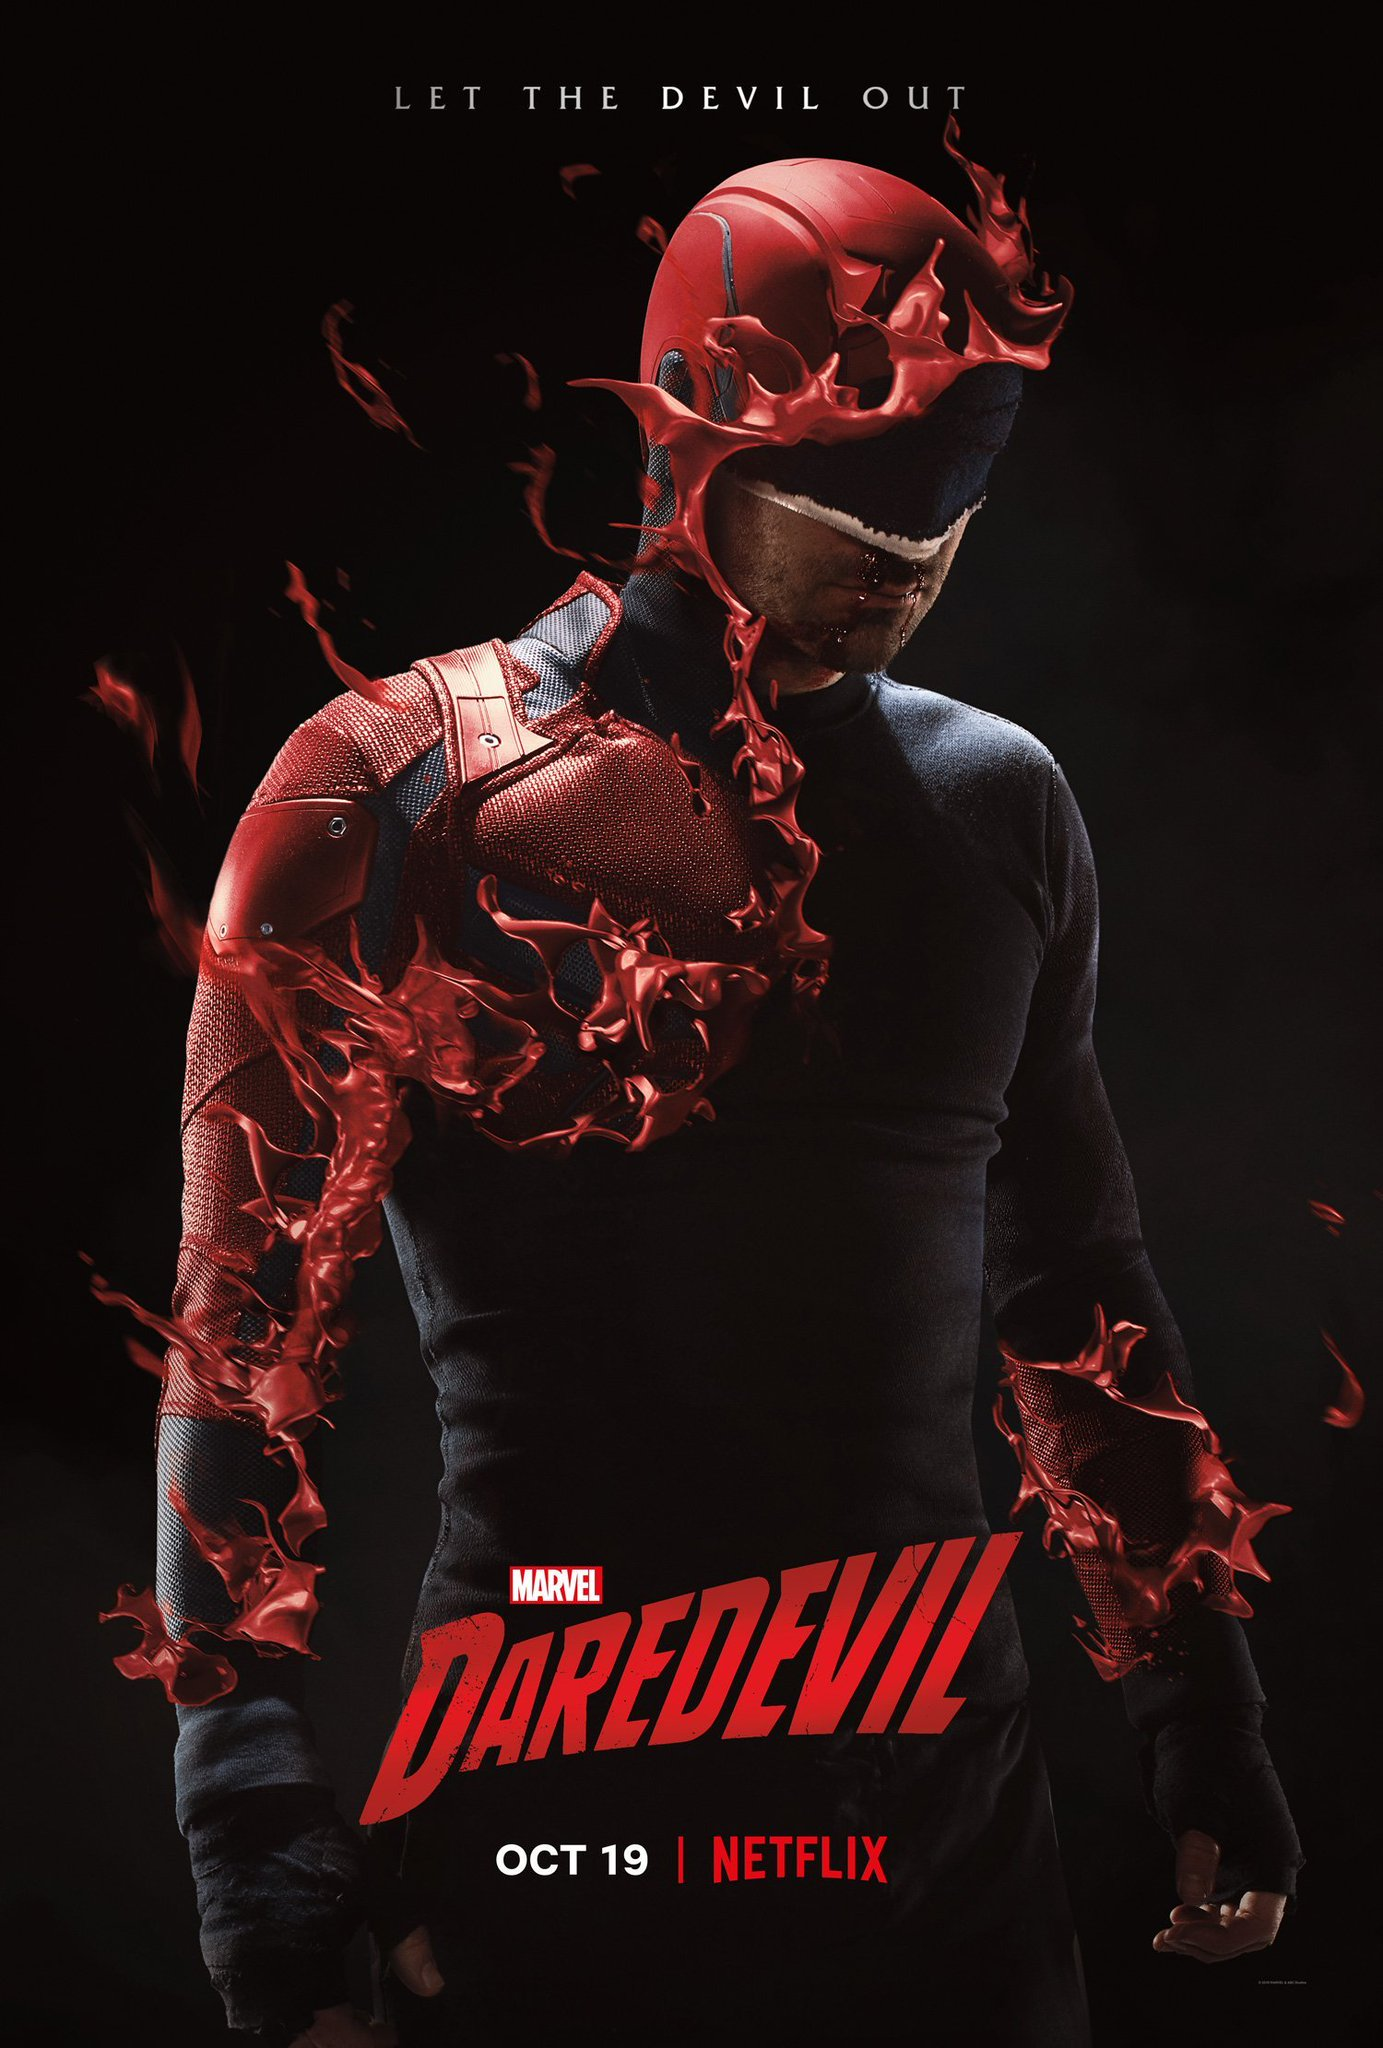 Image result for daredevil season 3 poster let the devil out